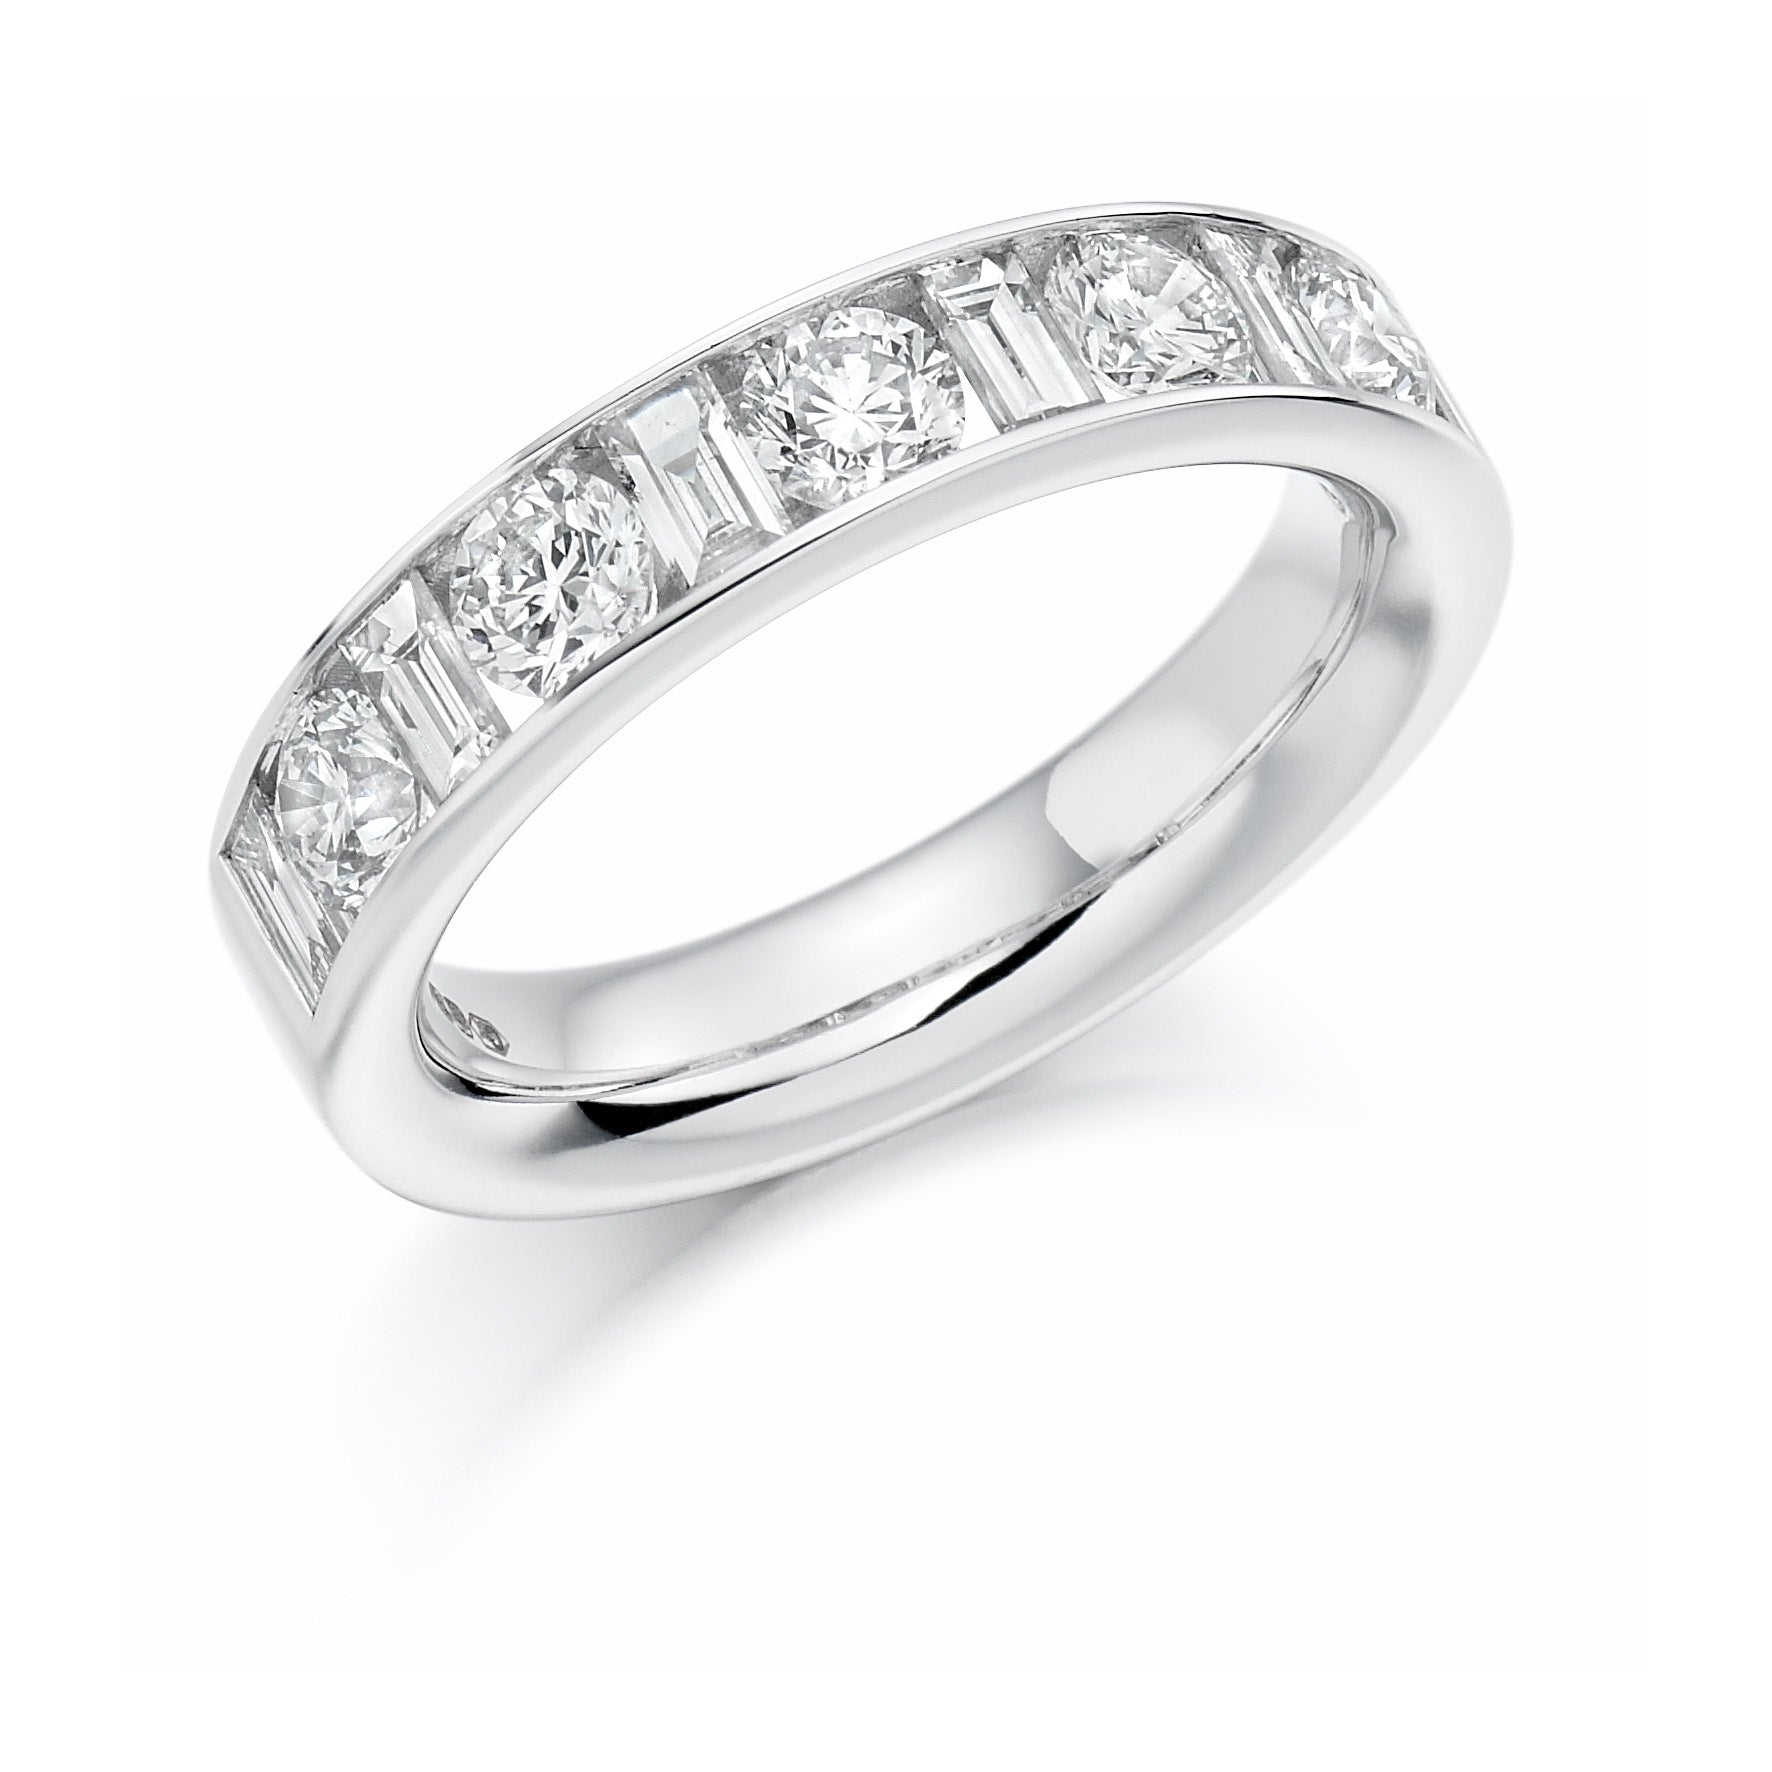 18ct White Gold 1.5ct Round Brilliant Cut and Baguette Cut Diamonds Vintage Wedding Ring